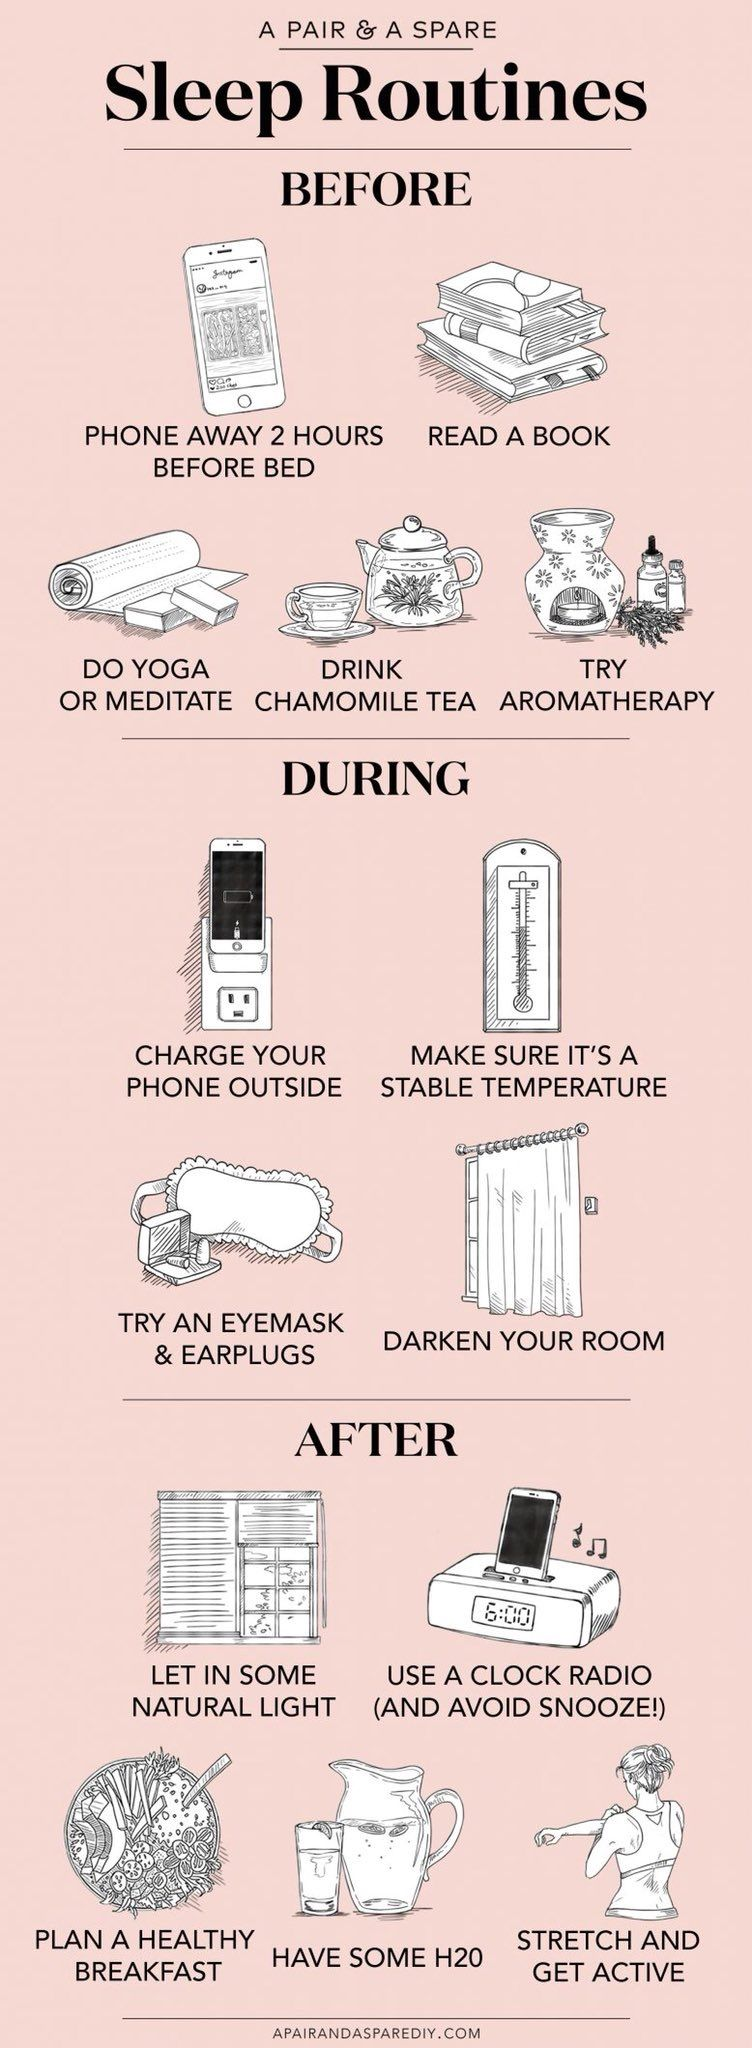 Pin by Nashara South on High school Pinterest Routine Self